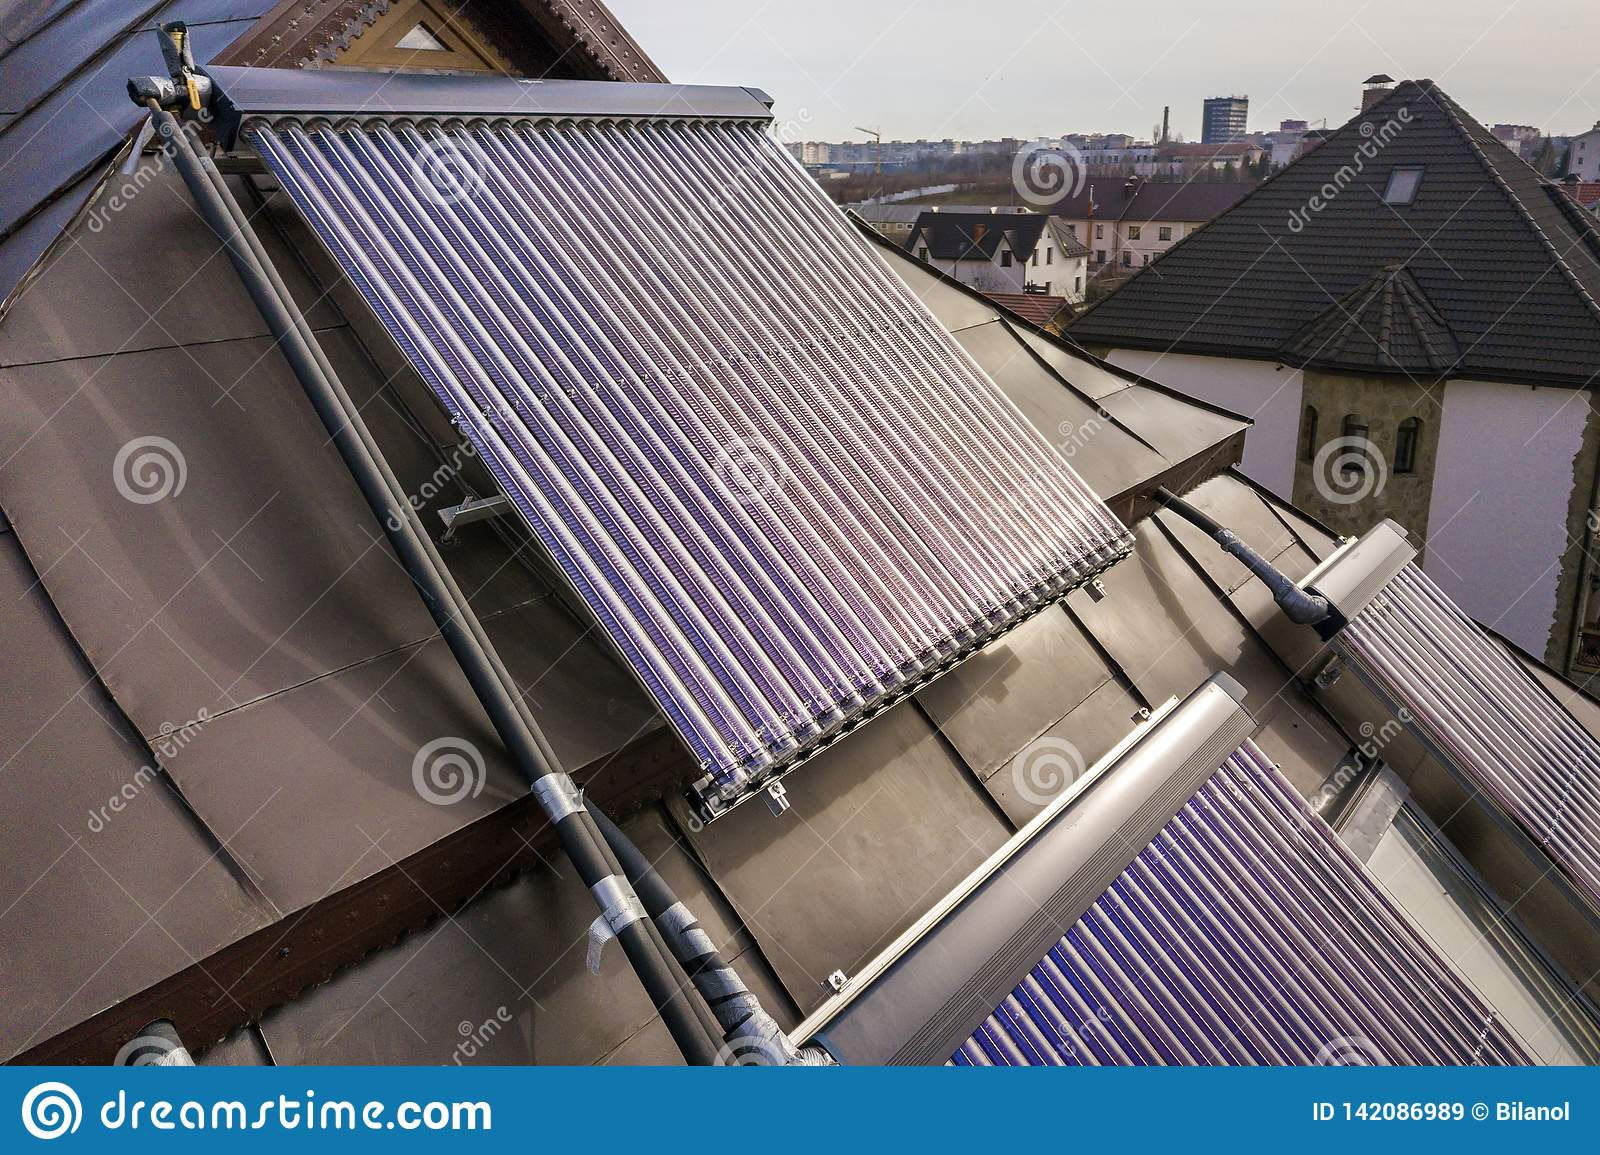 Solar water heating system on house roof. Hot water boiler, alternative ecological sun energy generator. Modern technology concept